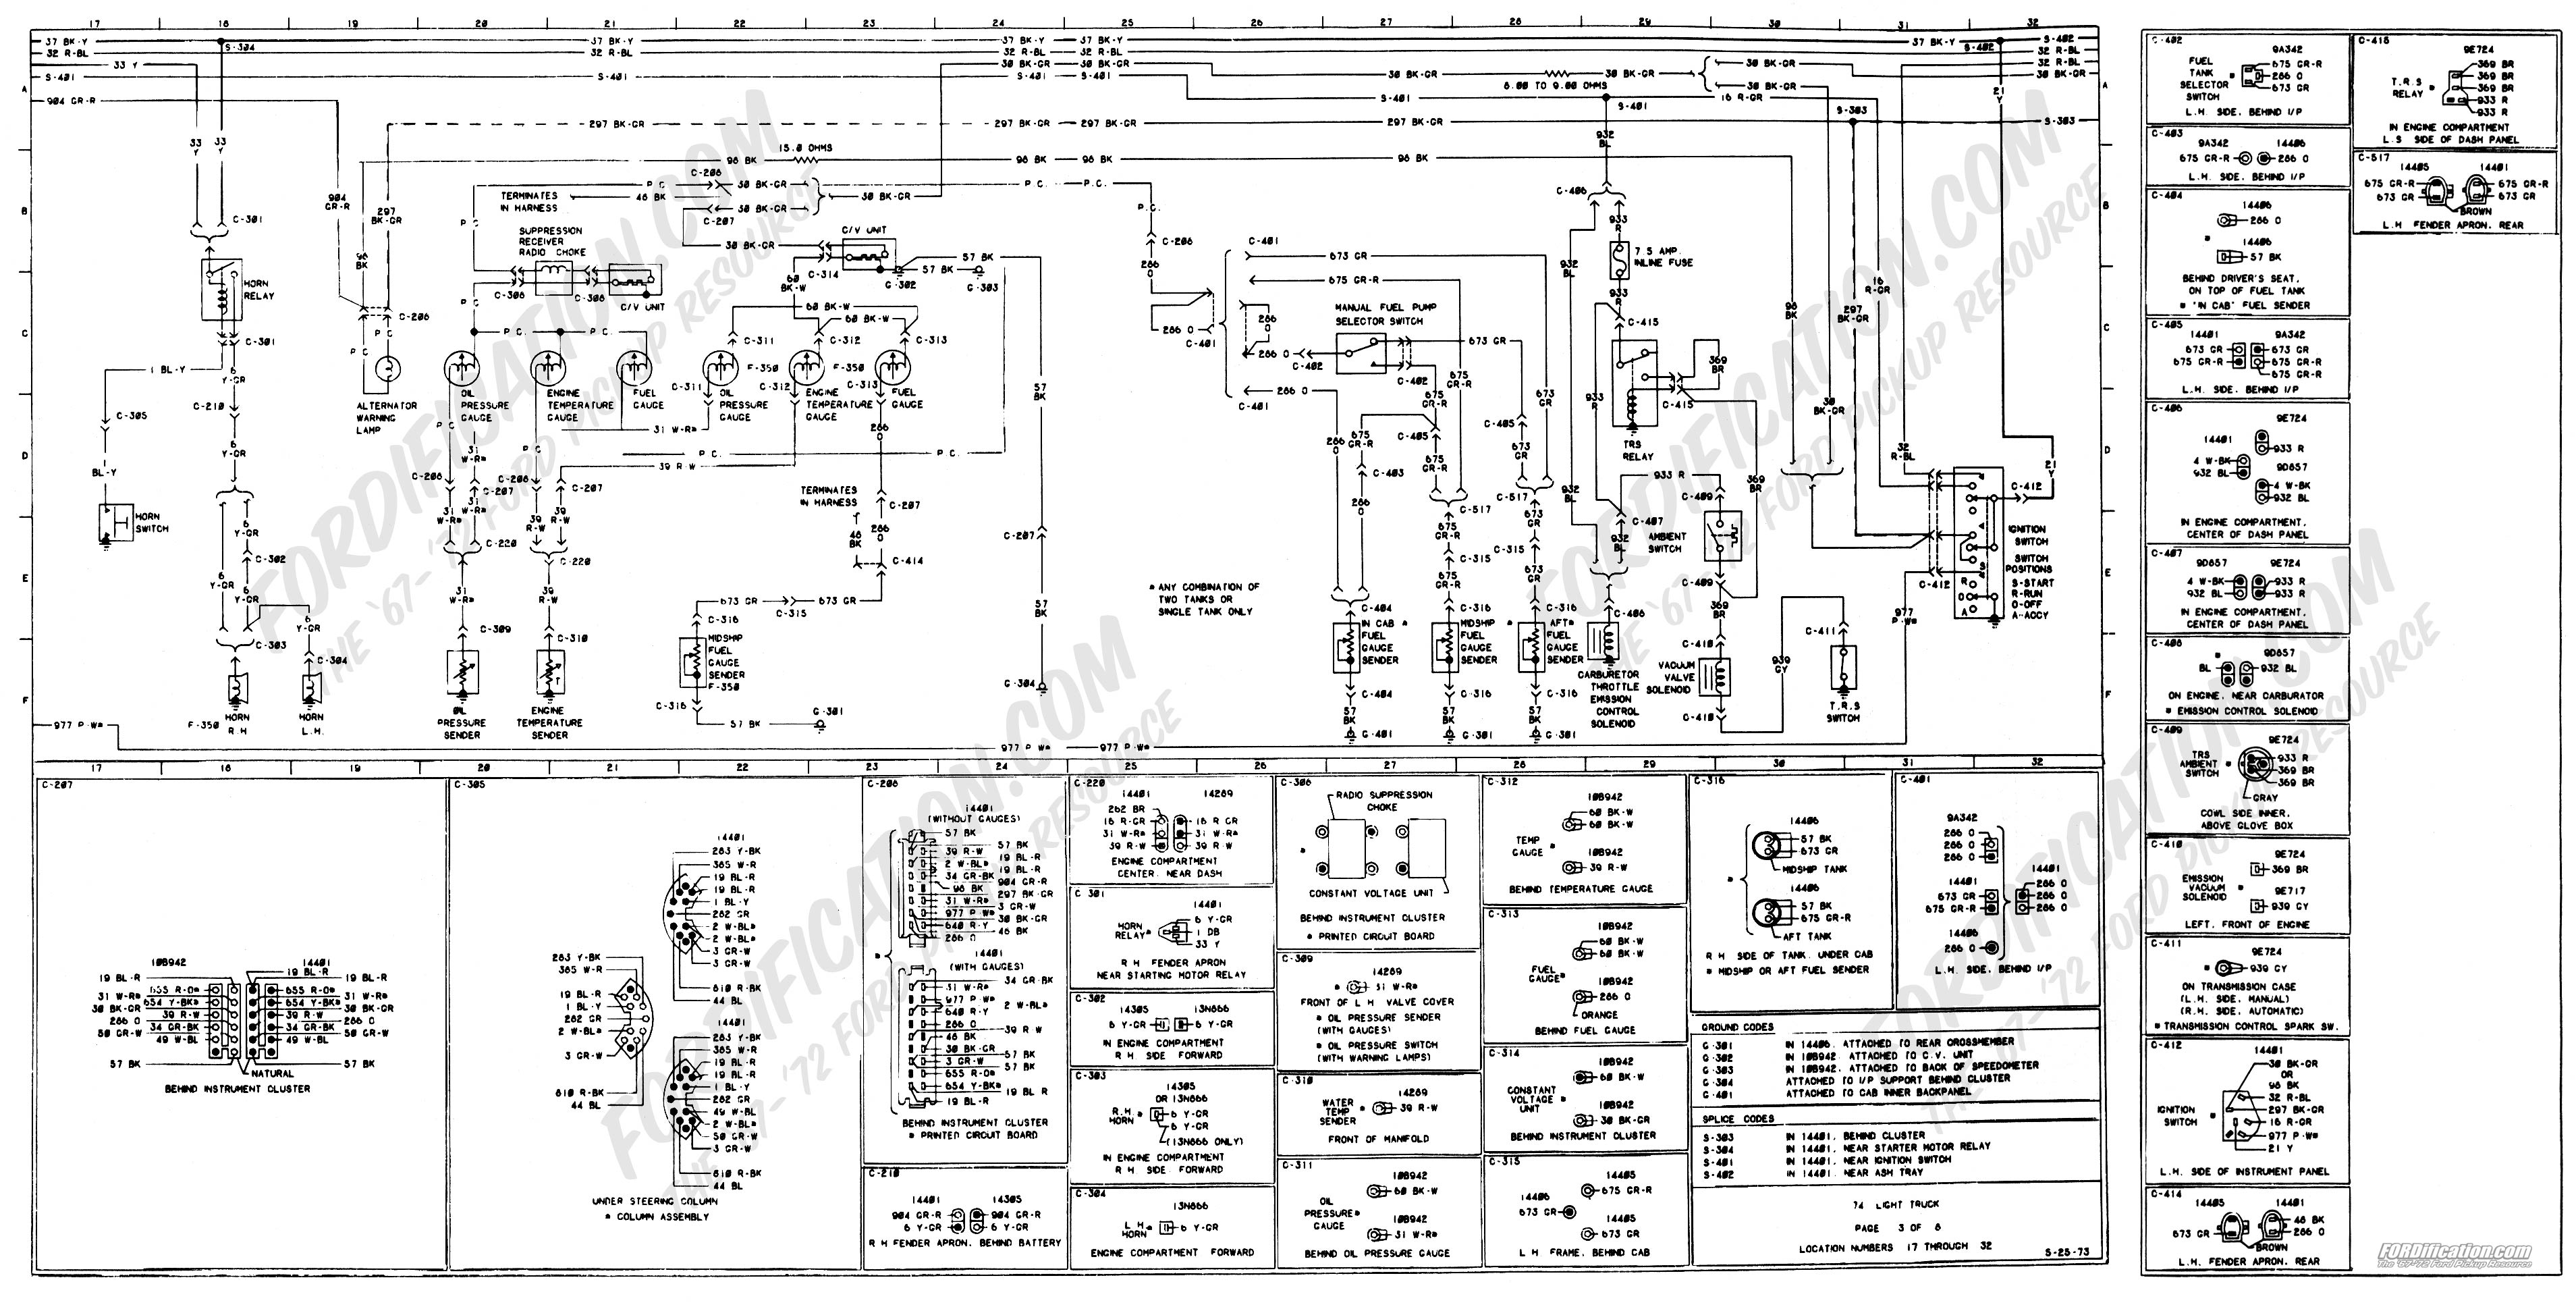 1973 1979 ford truck wiring diagrams schematics fordification net rh fordification net 1965 Ford Truck Wiring Harness 1965 Ford Truck Wiring Diagram